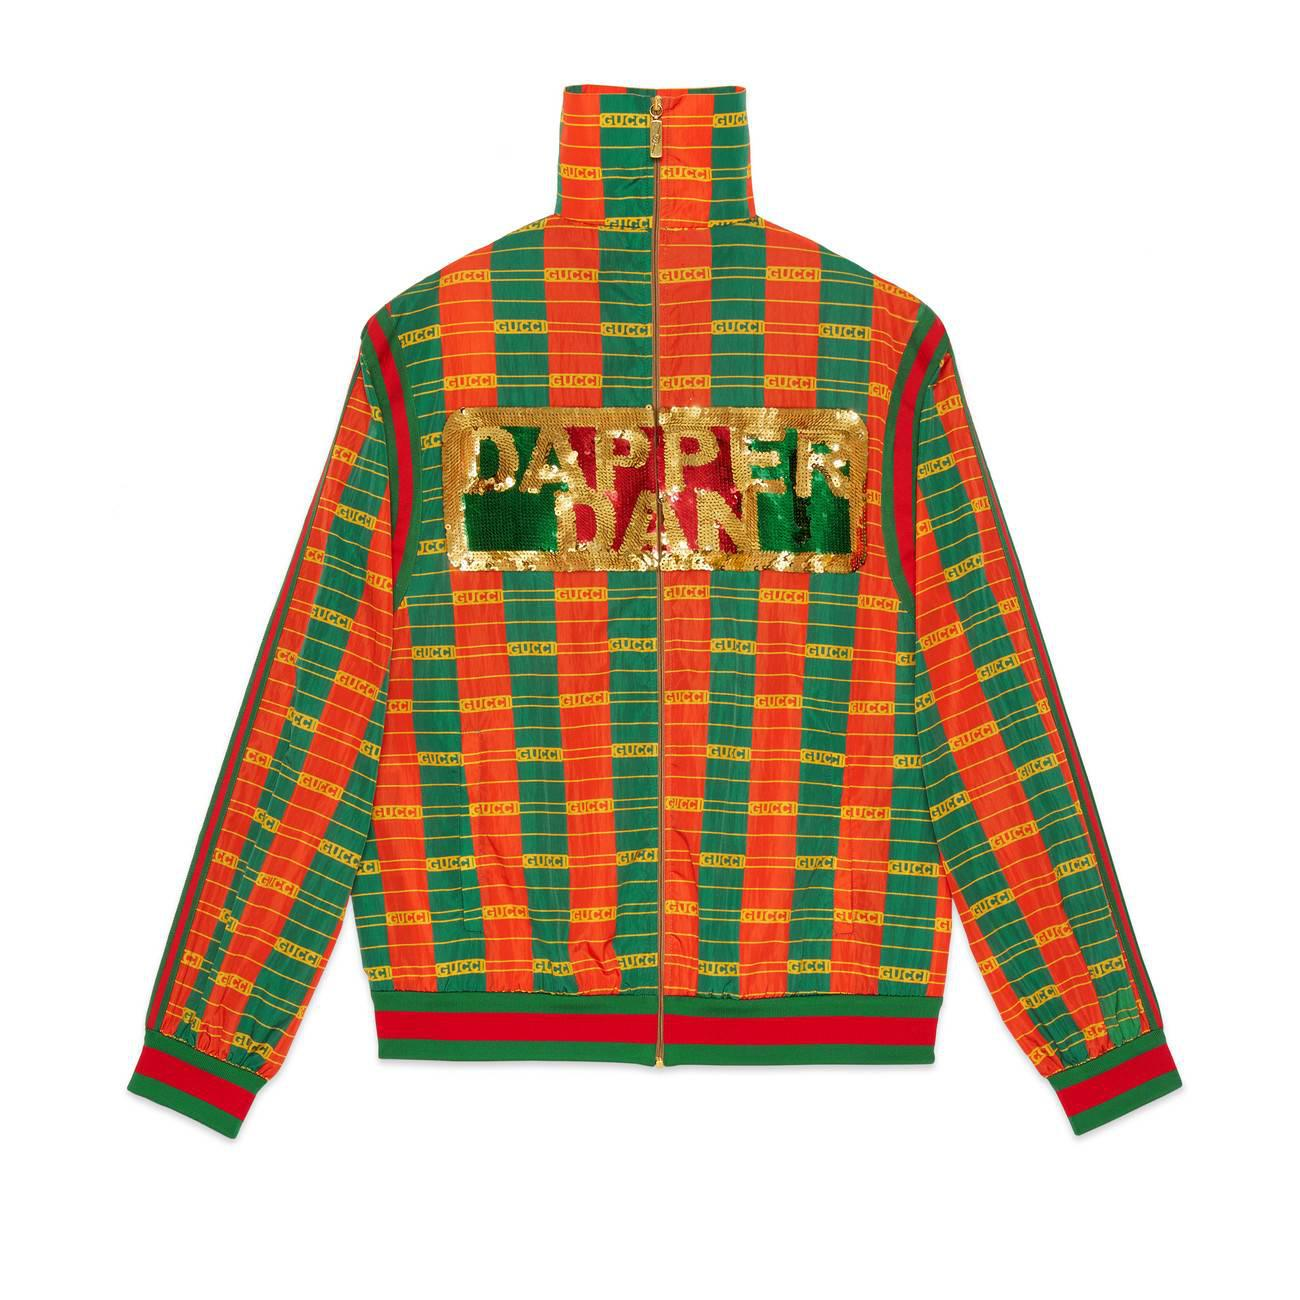 05ccd7f6bad Gucci -dapper Dan Jacket in Green - Lyst